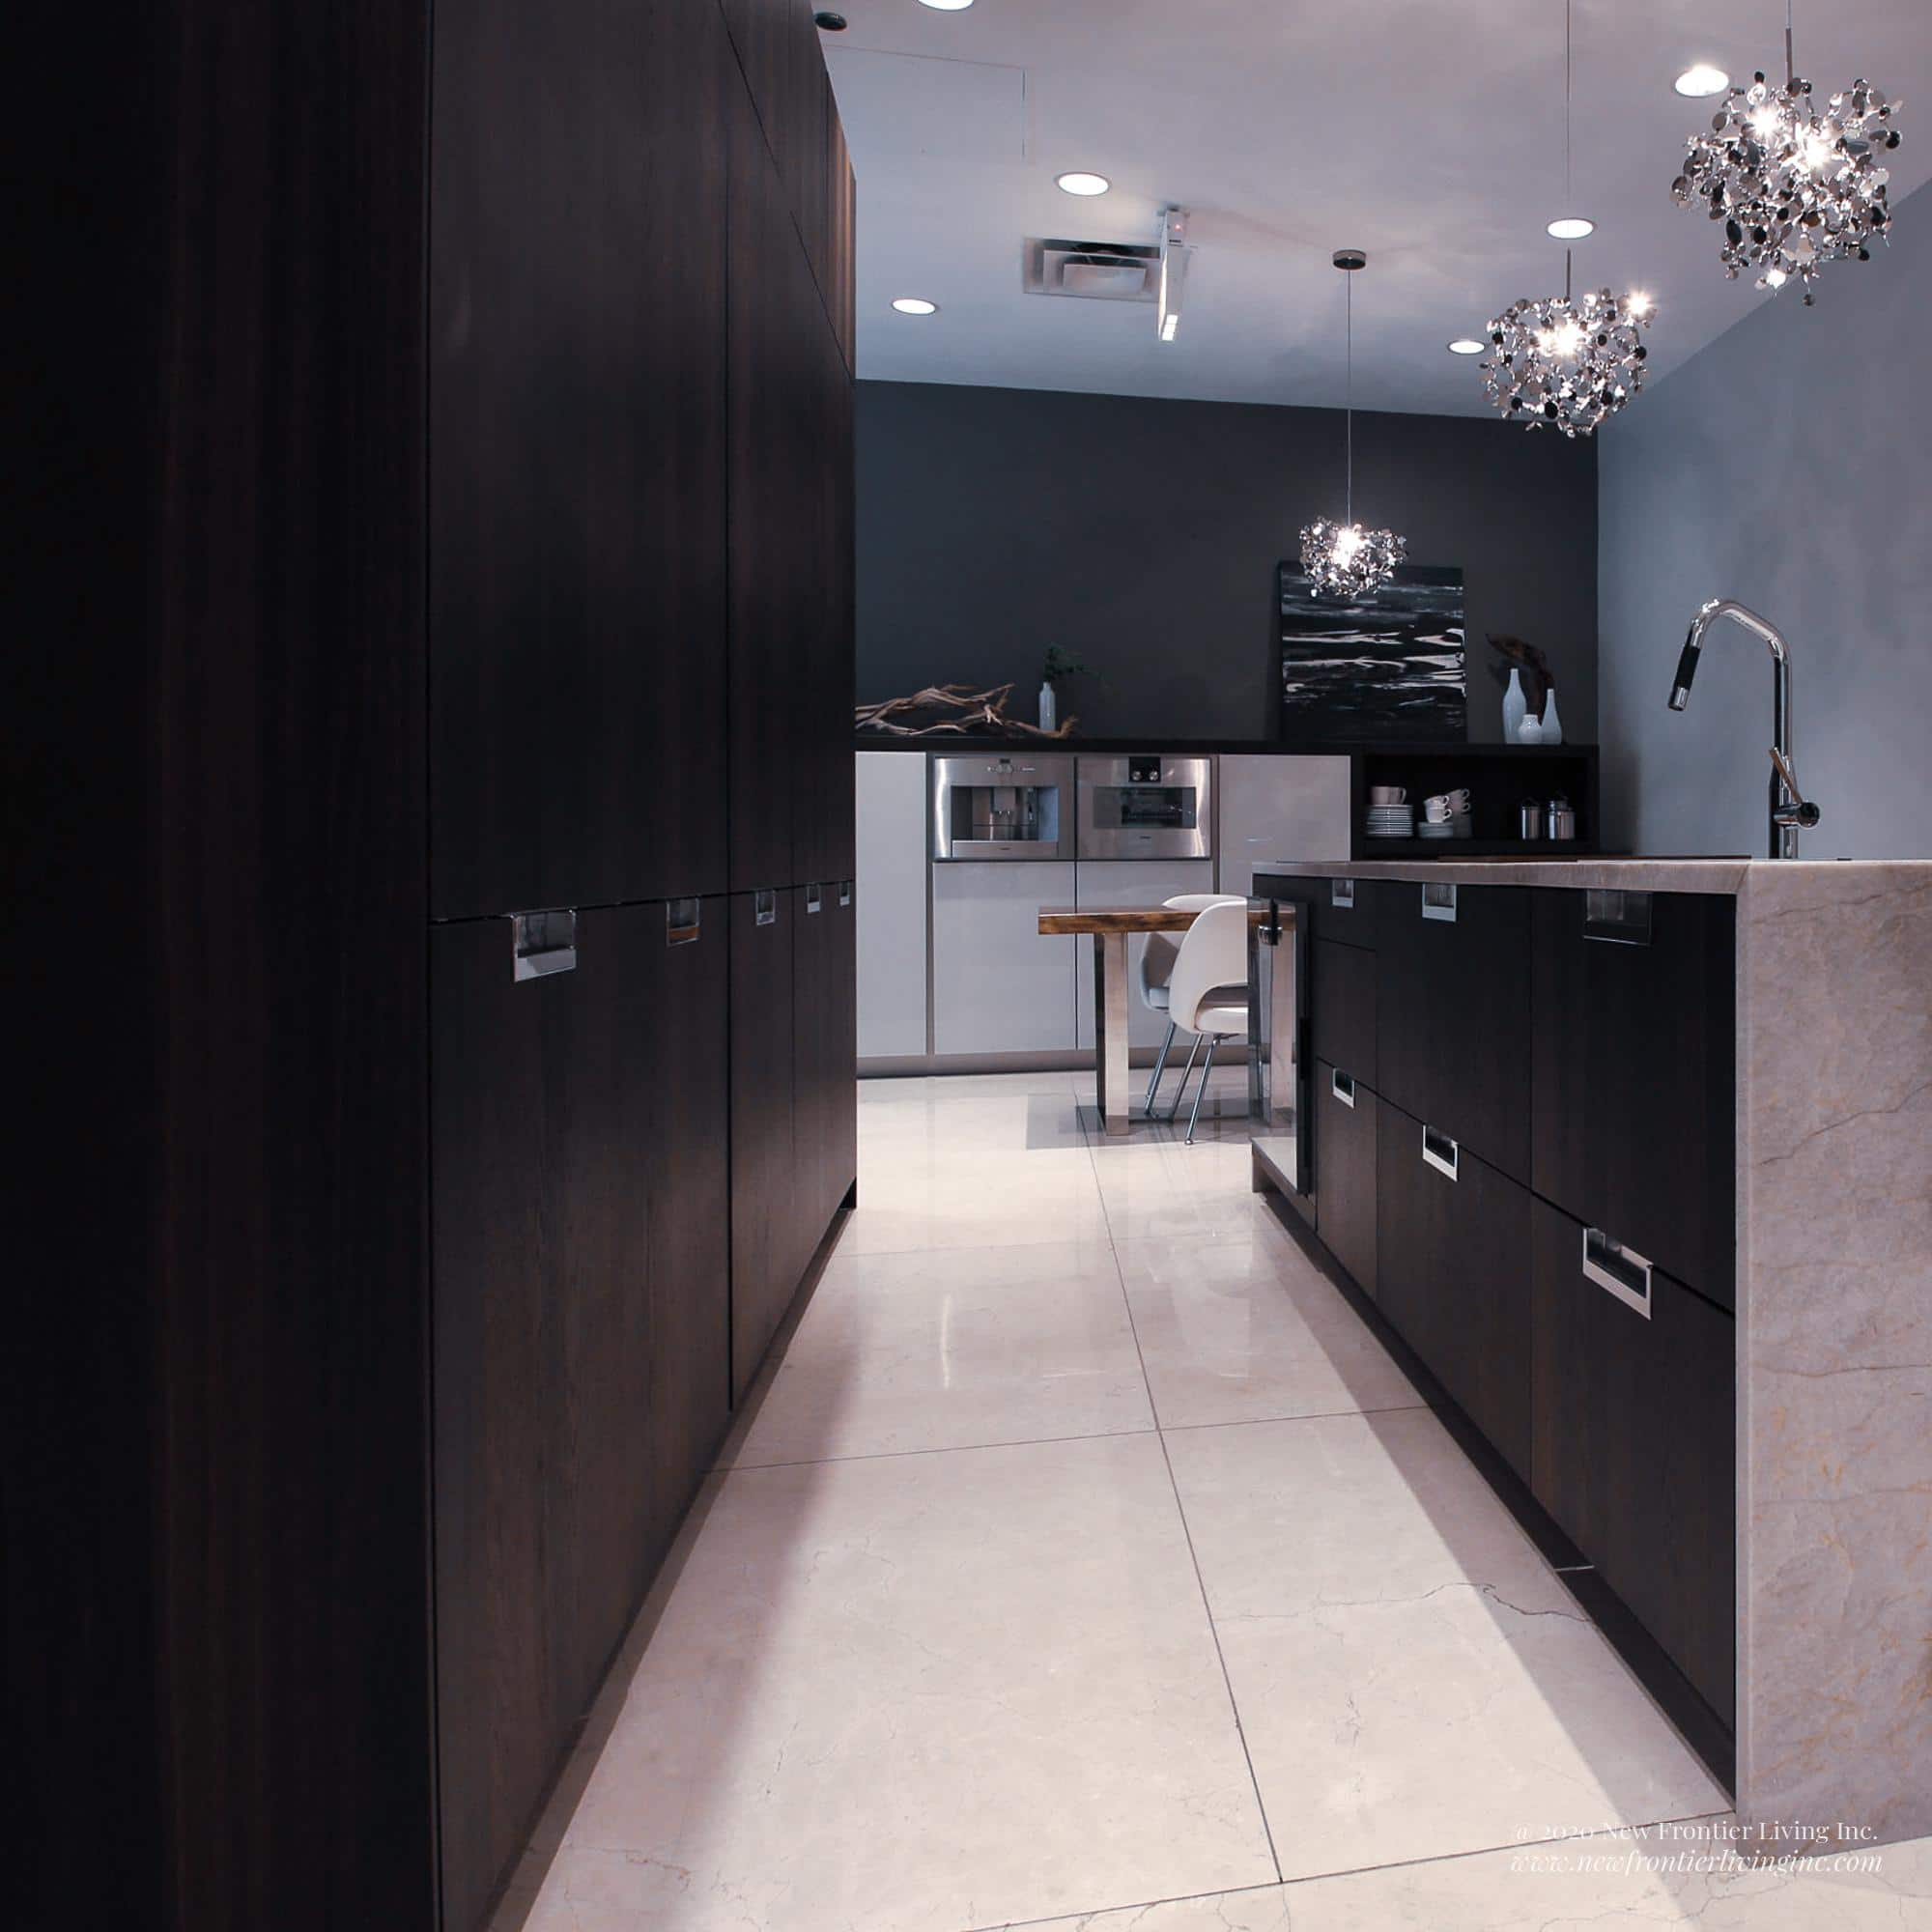 Tall black kitchen cabinets and an island with cream waterfall countertop